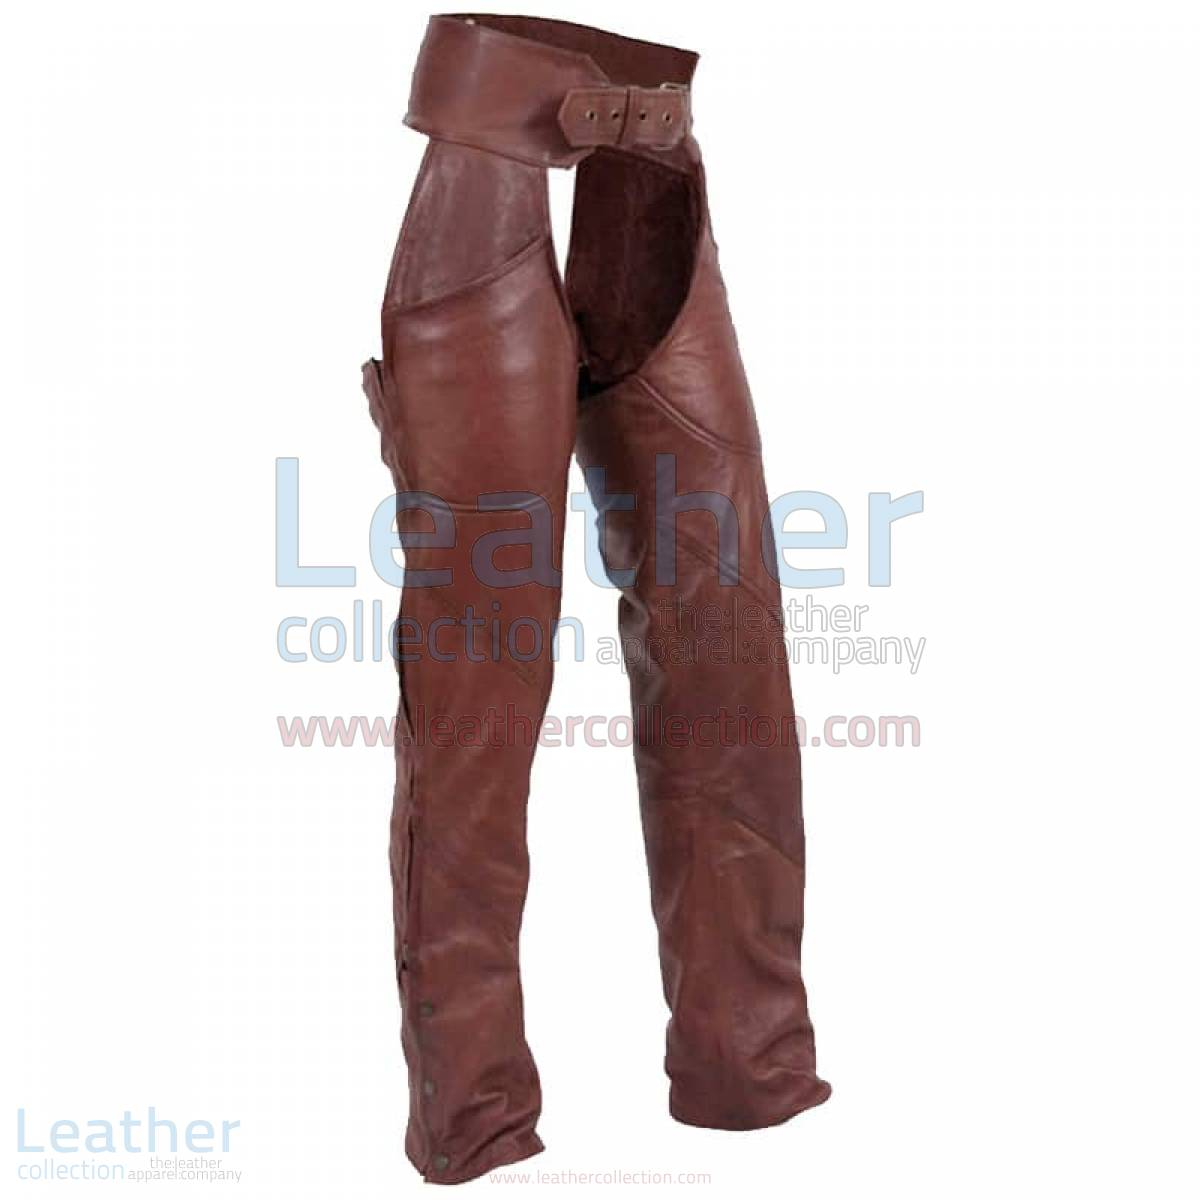 Antique Brown Leather Motorcycle Chaps